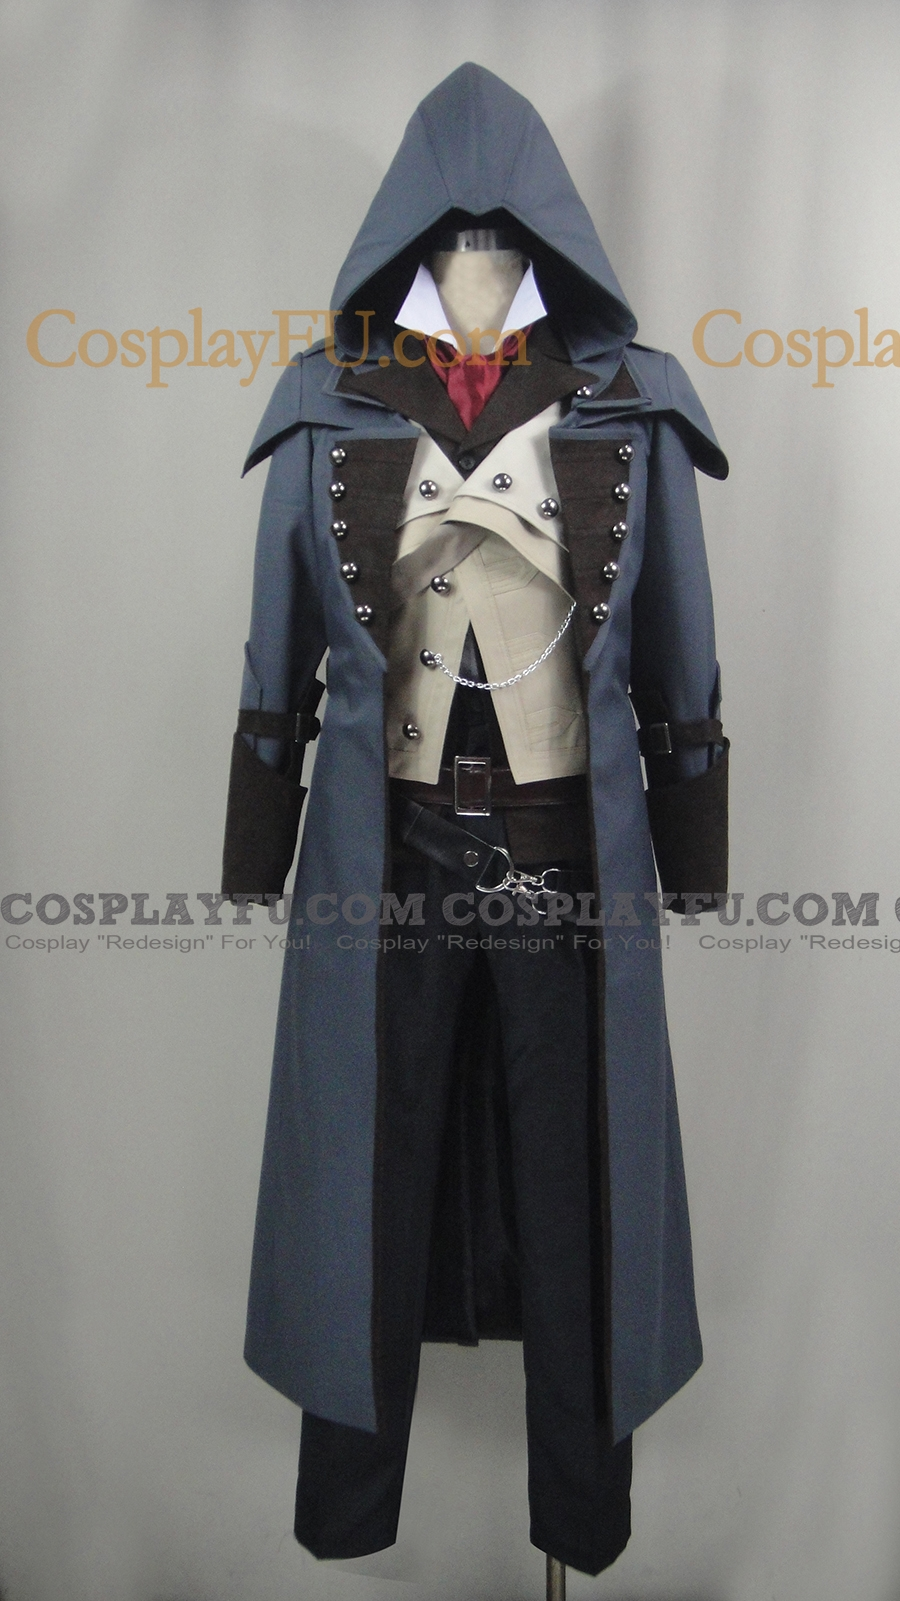 Arno Cosplay Costume from Assassin's Creed